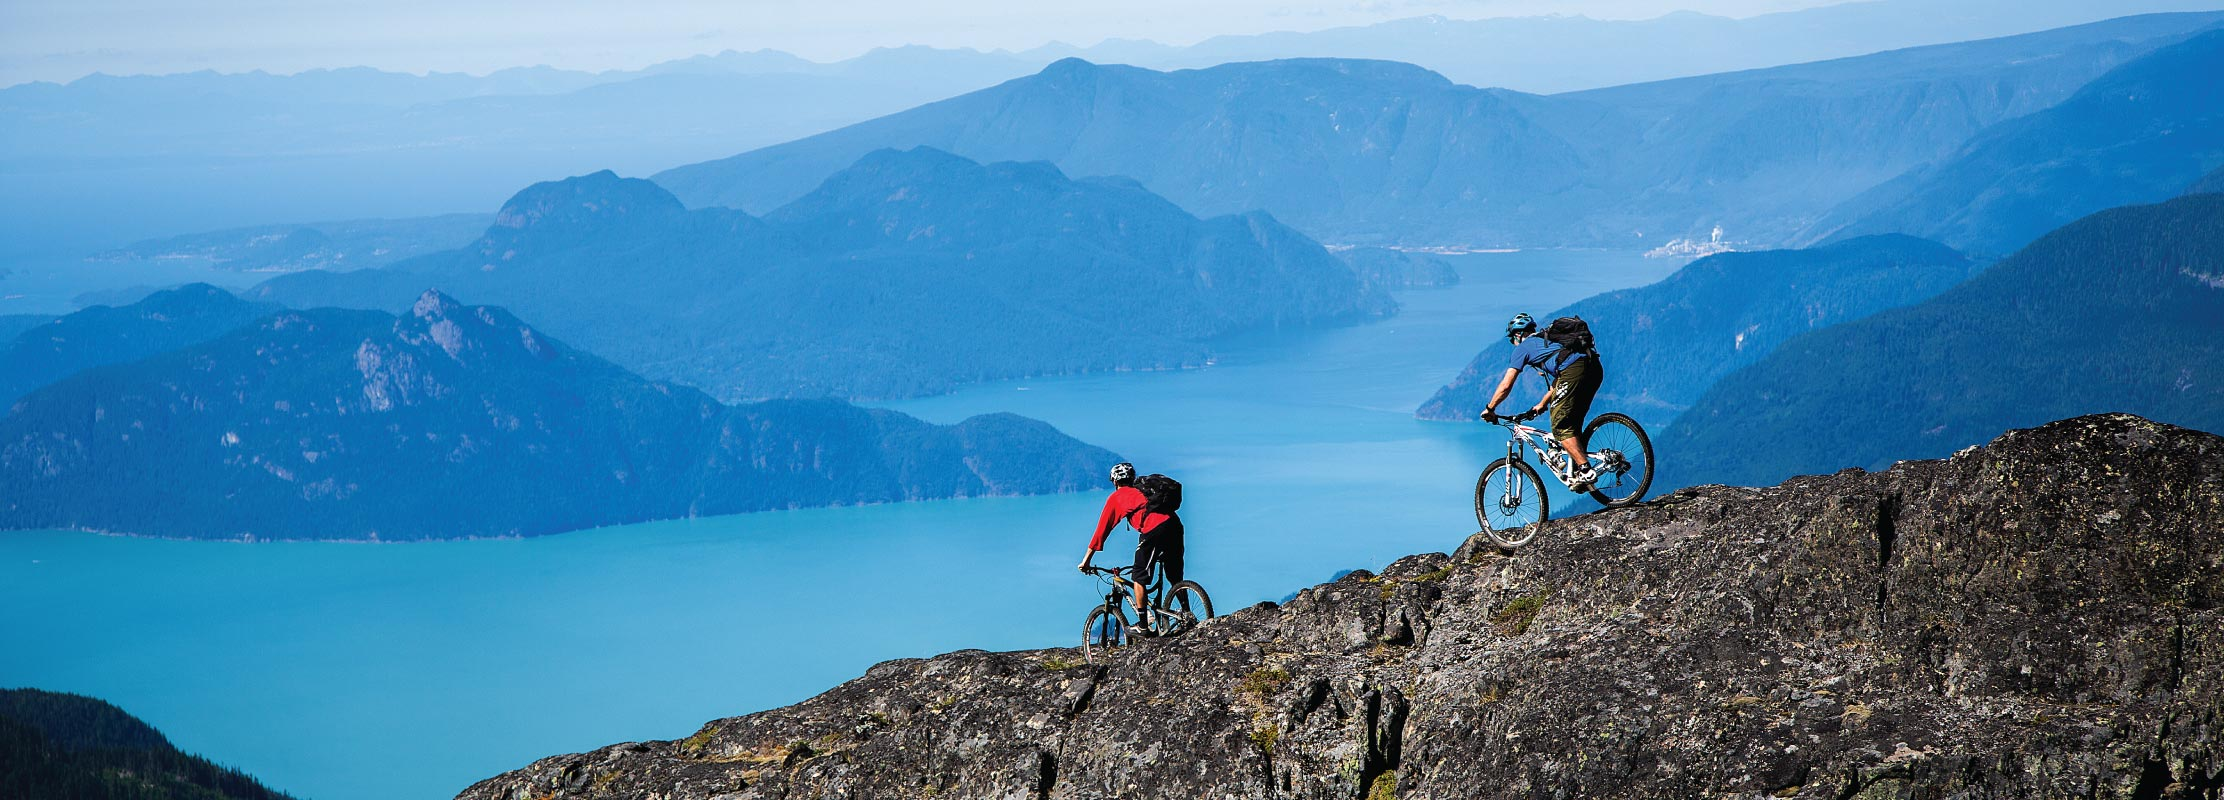 Mountain Bikers on Goat Ridge in Squamish, BC